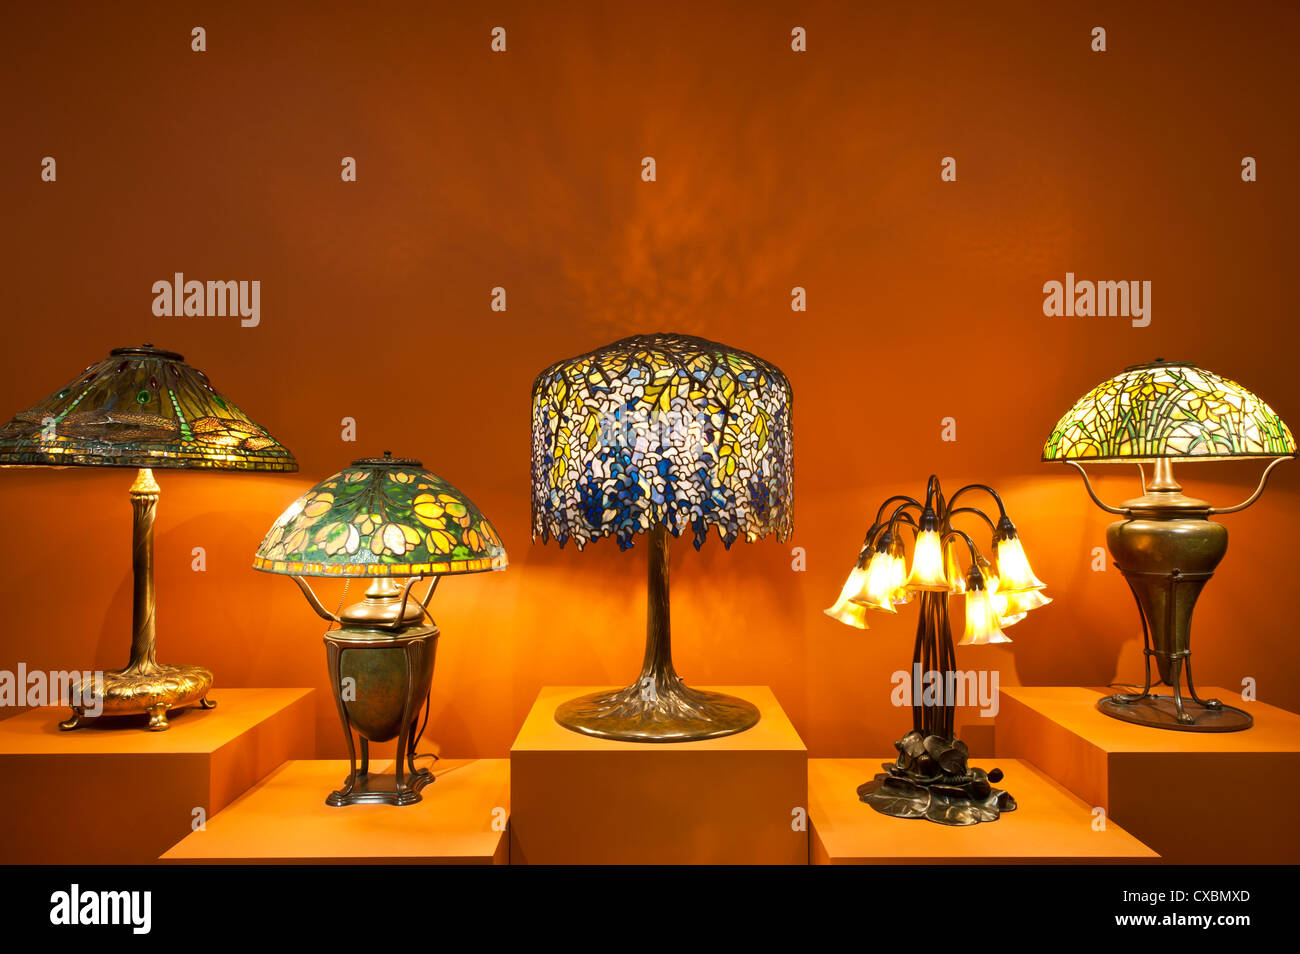 Tiffany lamps, the Charles Hosmer Morse Museum, Winter Park, Florida, United States of America, North America - Stock Image